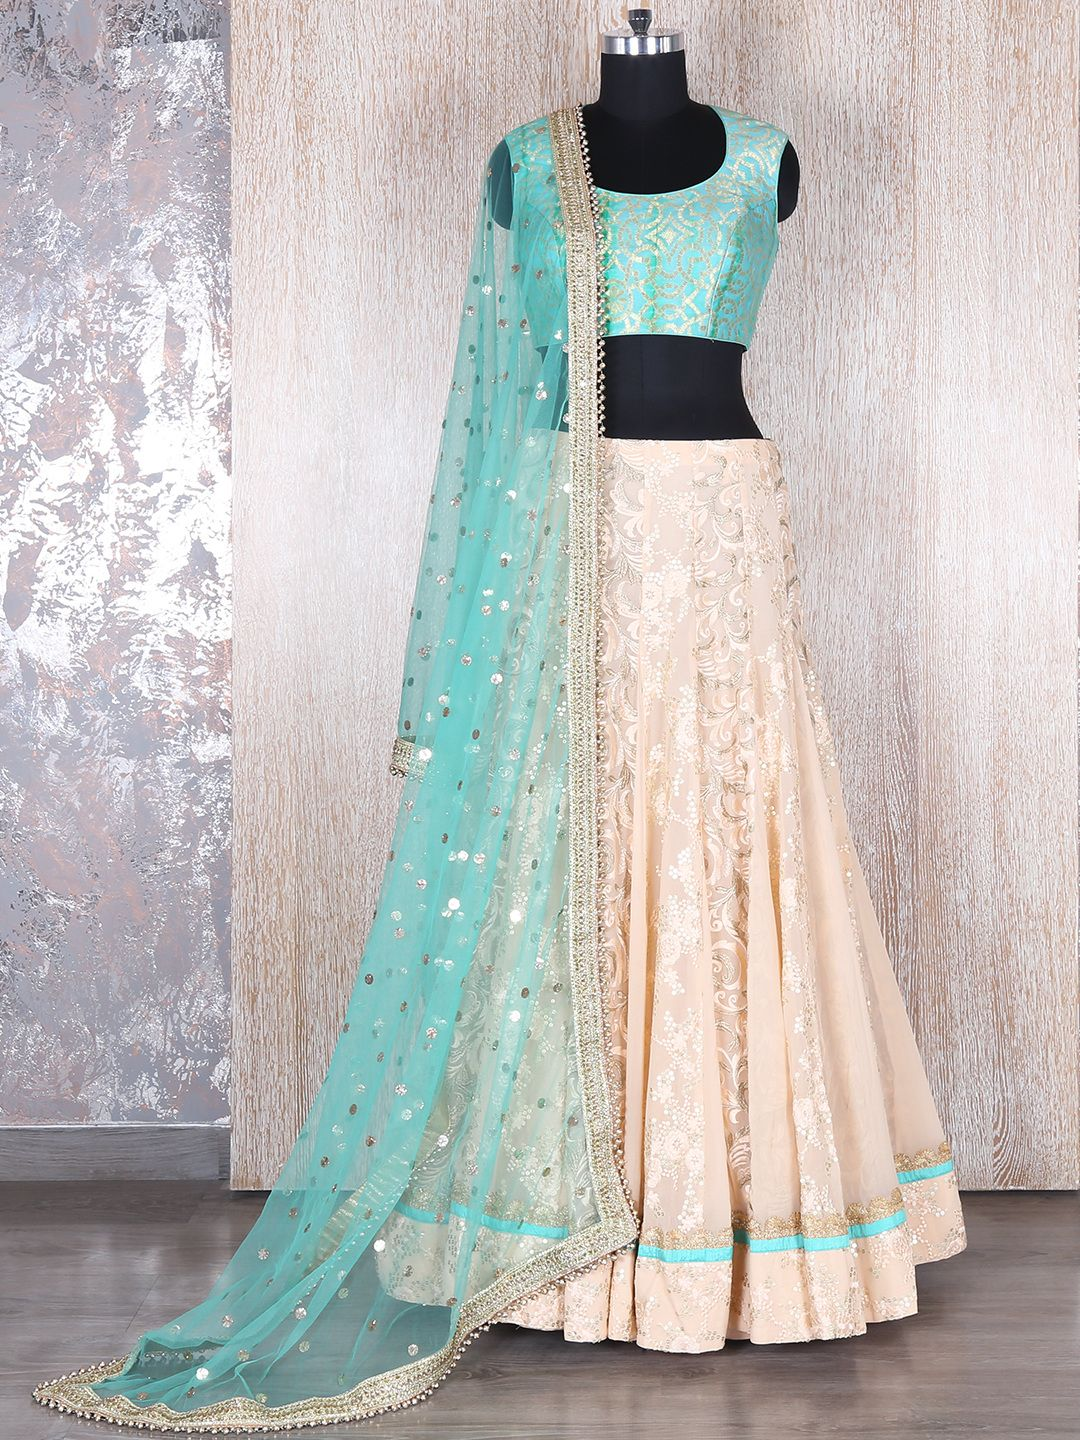 d851c34c06 Sky Blue Georgette Lehenga Choli | Buy wedding wear Lehnga Choli at ...